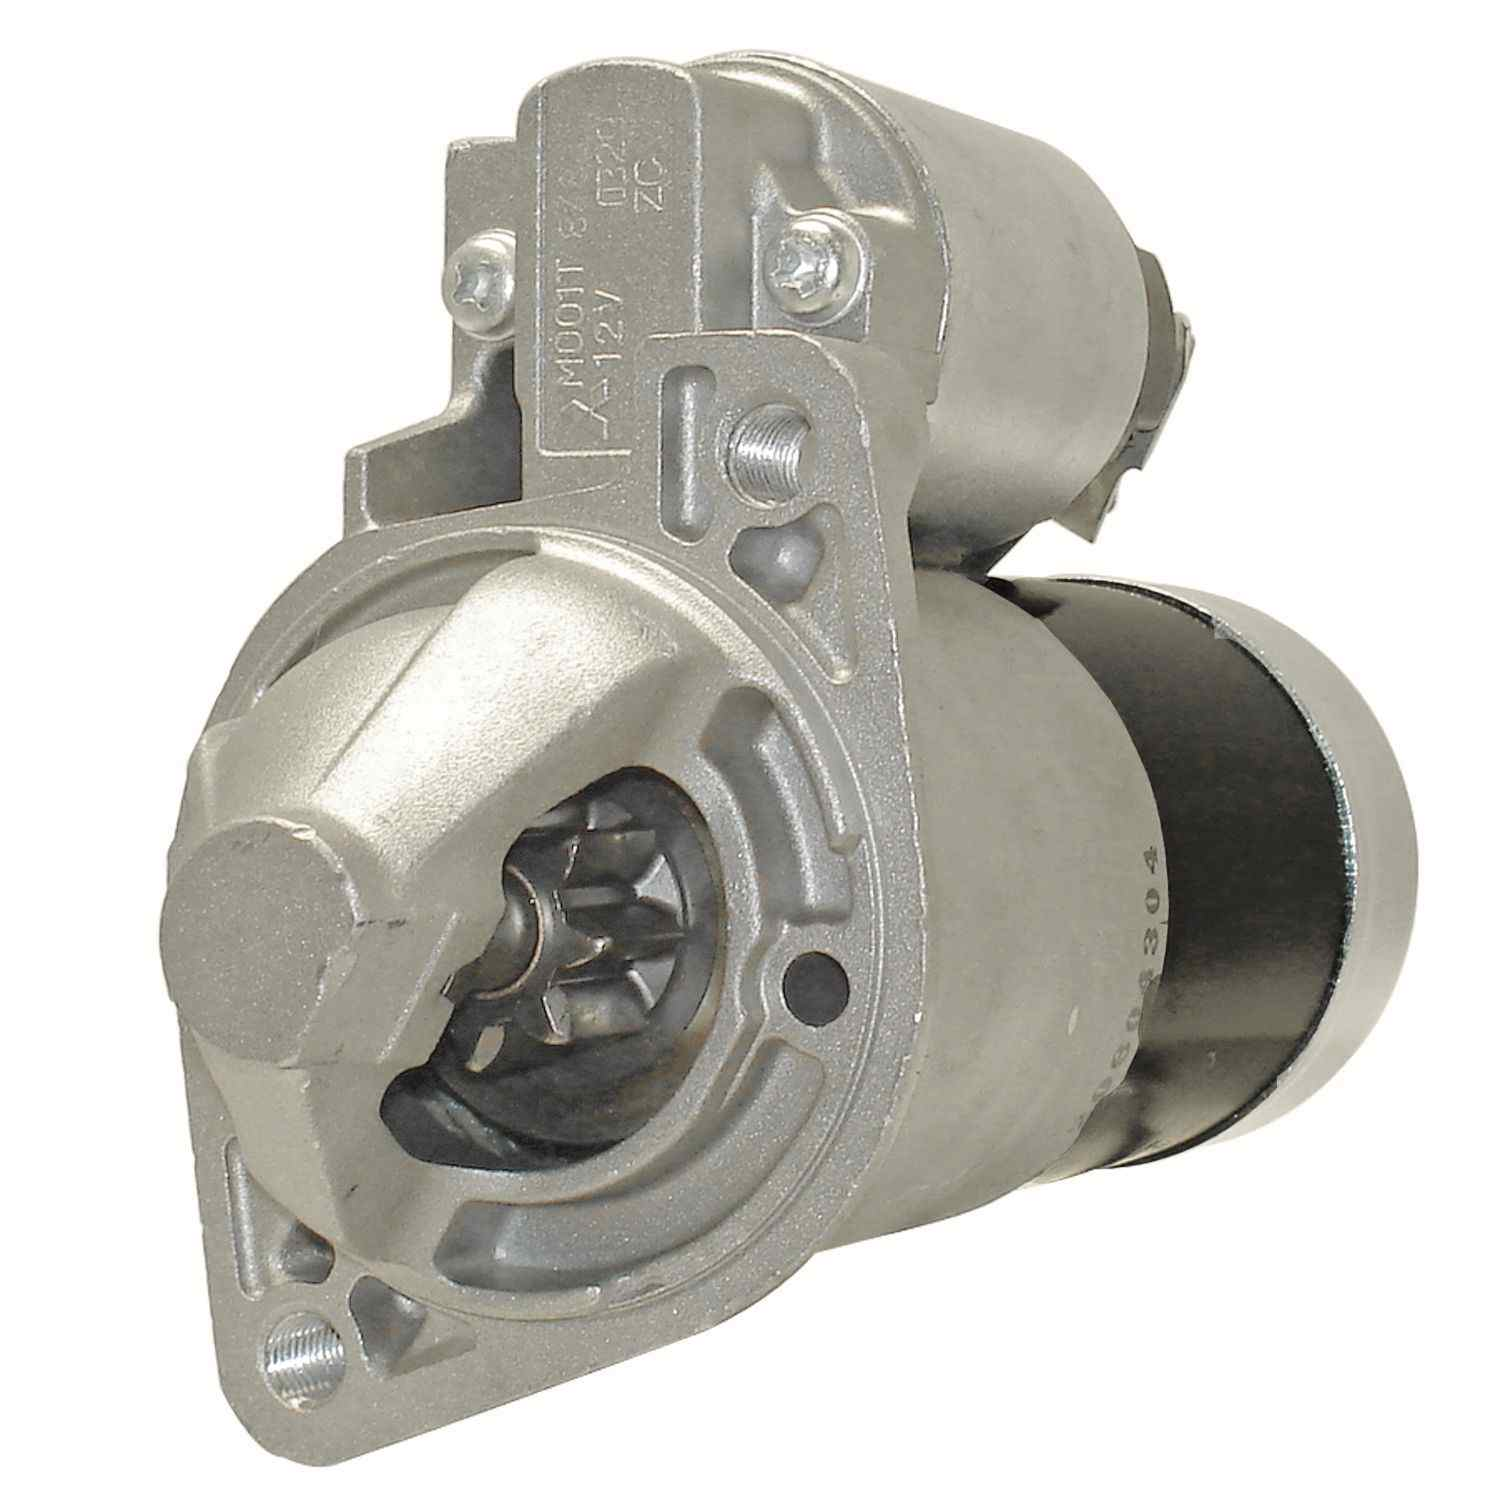 ACDELCO GOLD/PROFESSIONAL - Reman Starter Motor - DCC 336-1732